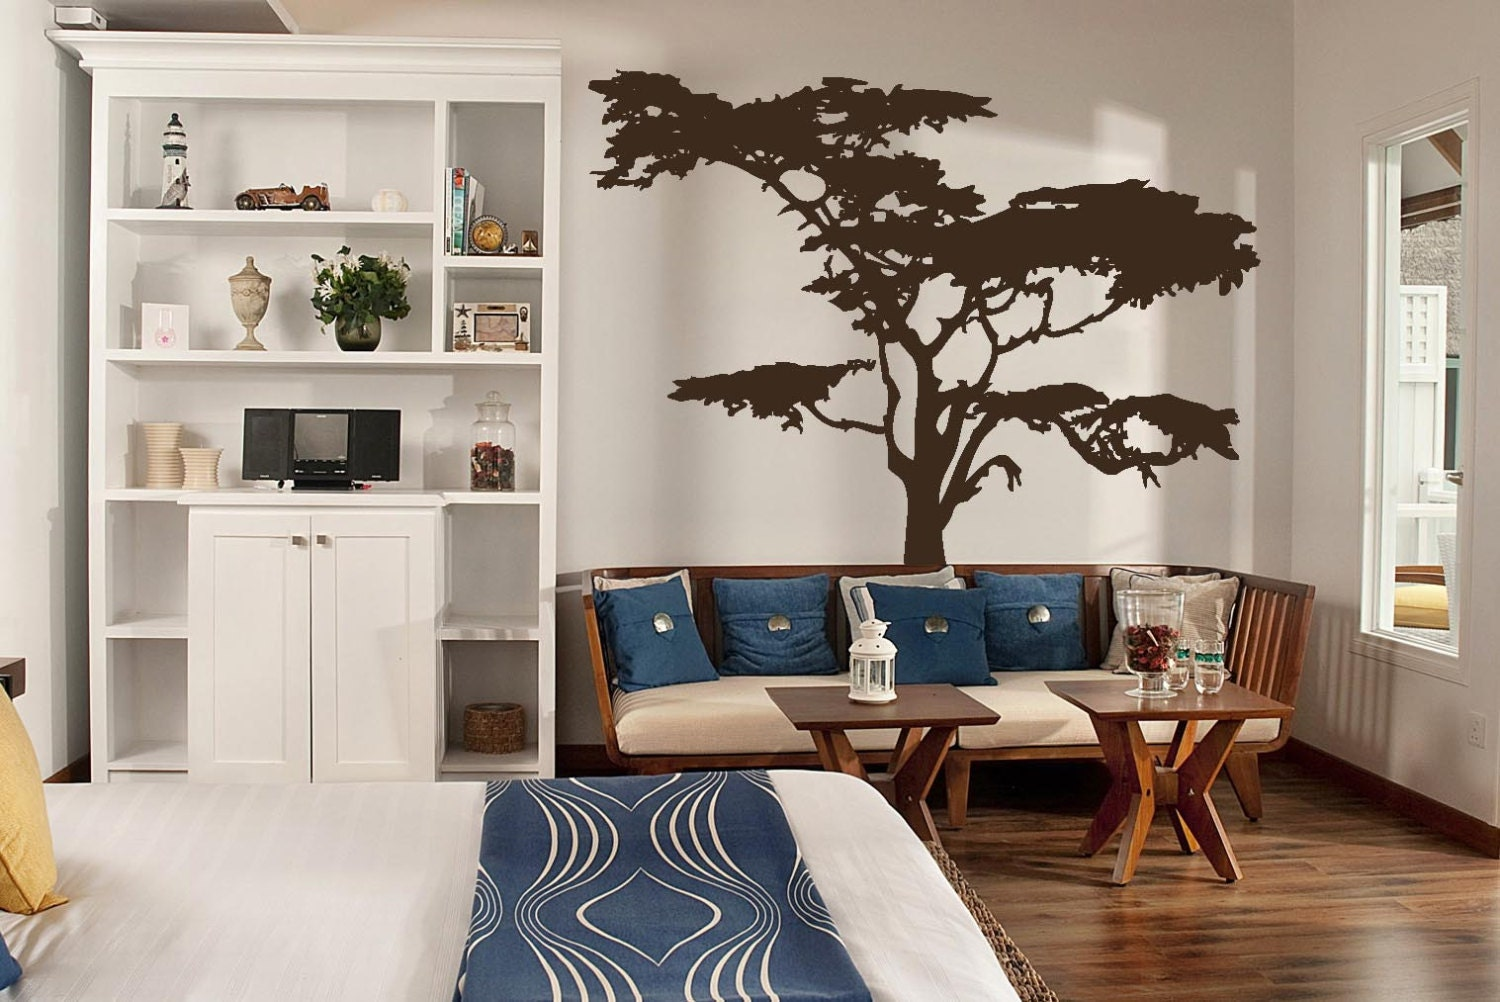 Realistic African Tree Wall Decal Headboard Wall Decal Home